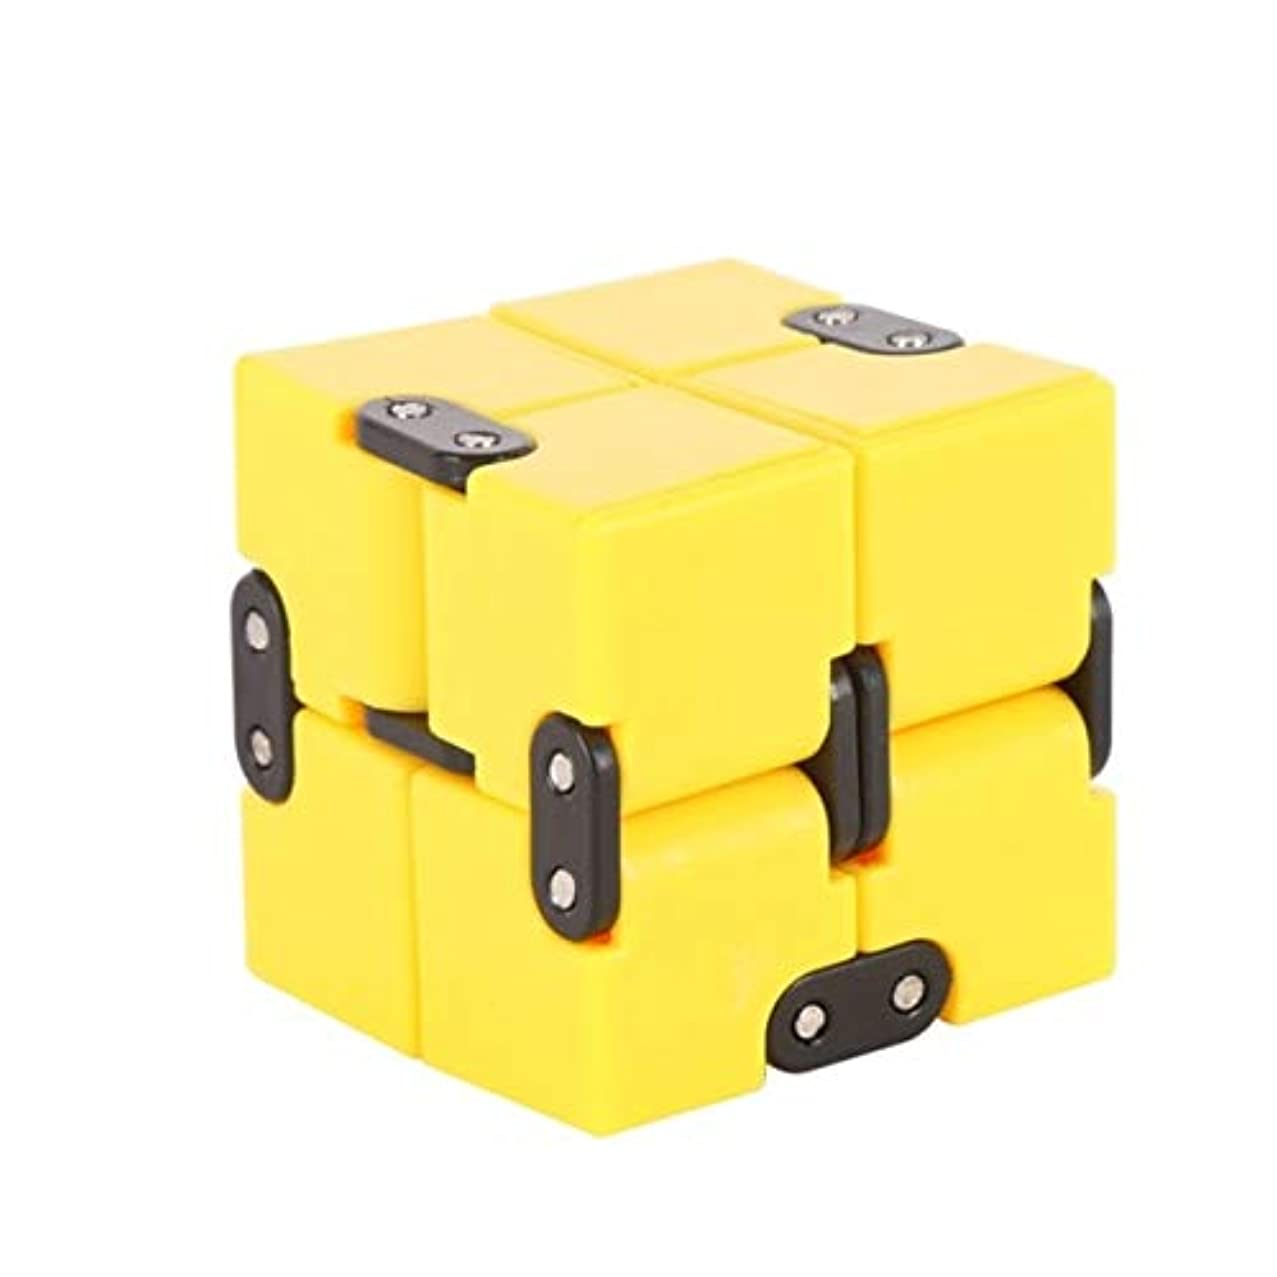 DishyKooker Infinity Cube Mini Fidget Toy Finger EDC Anxiety Stress Relief Magic Cube Blocks Adult Children Kids Funny Toys Best Gift New Yellow